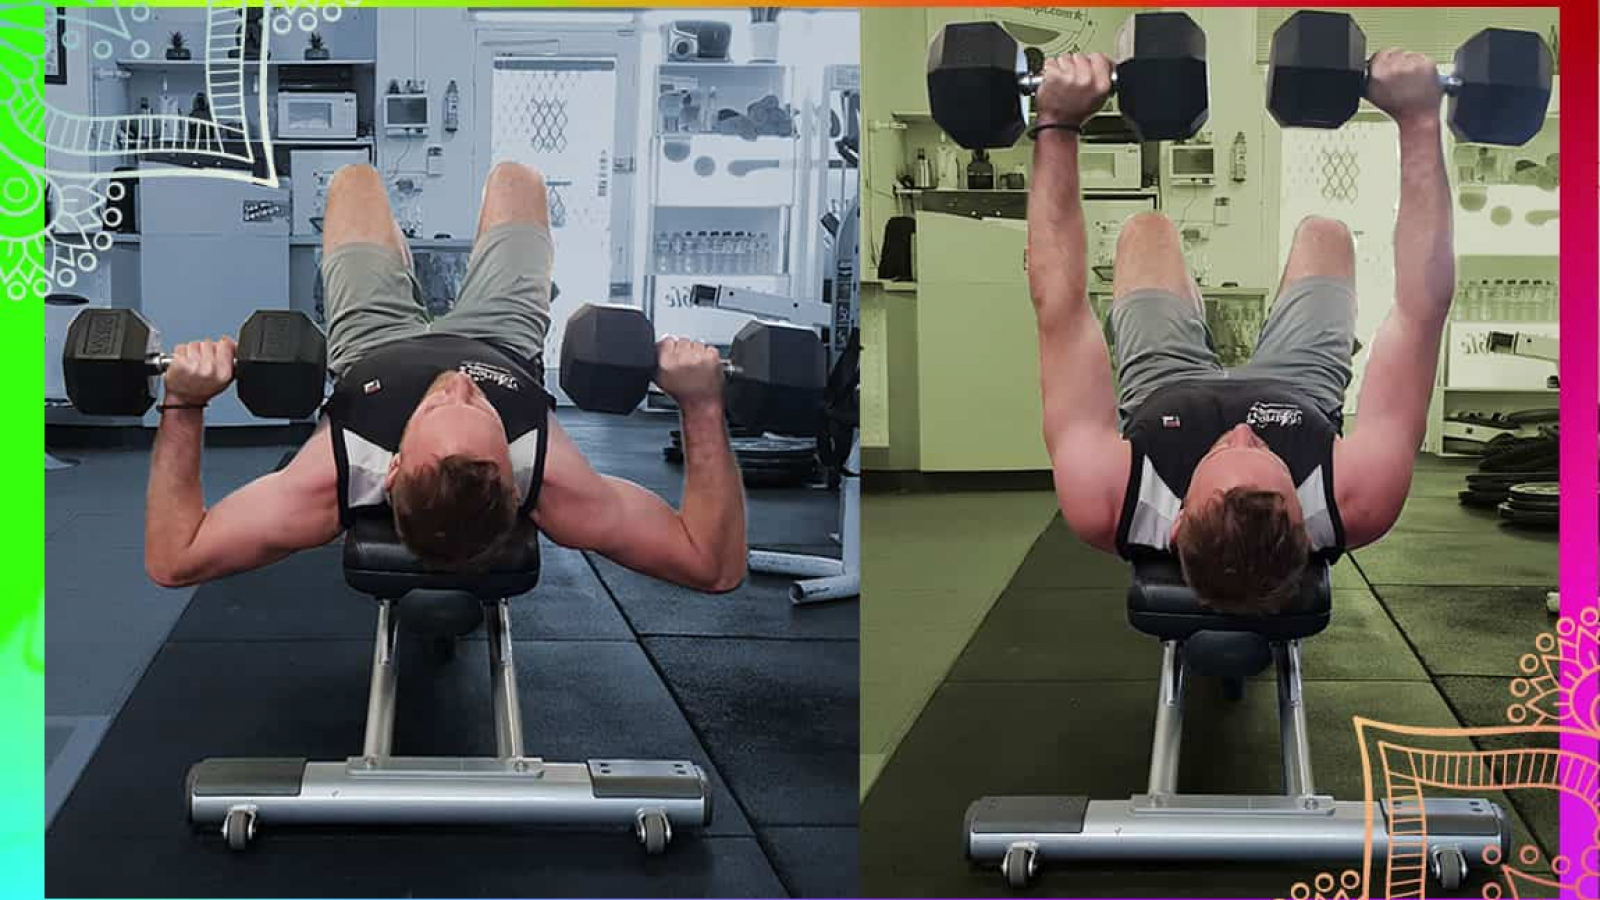 demonstration of the bench press